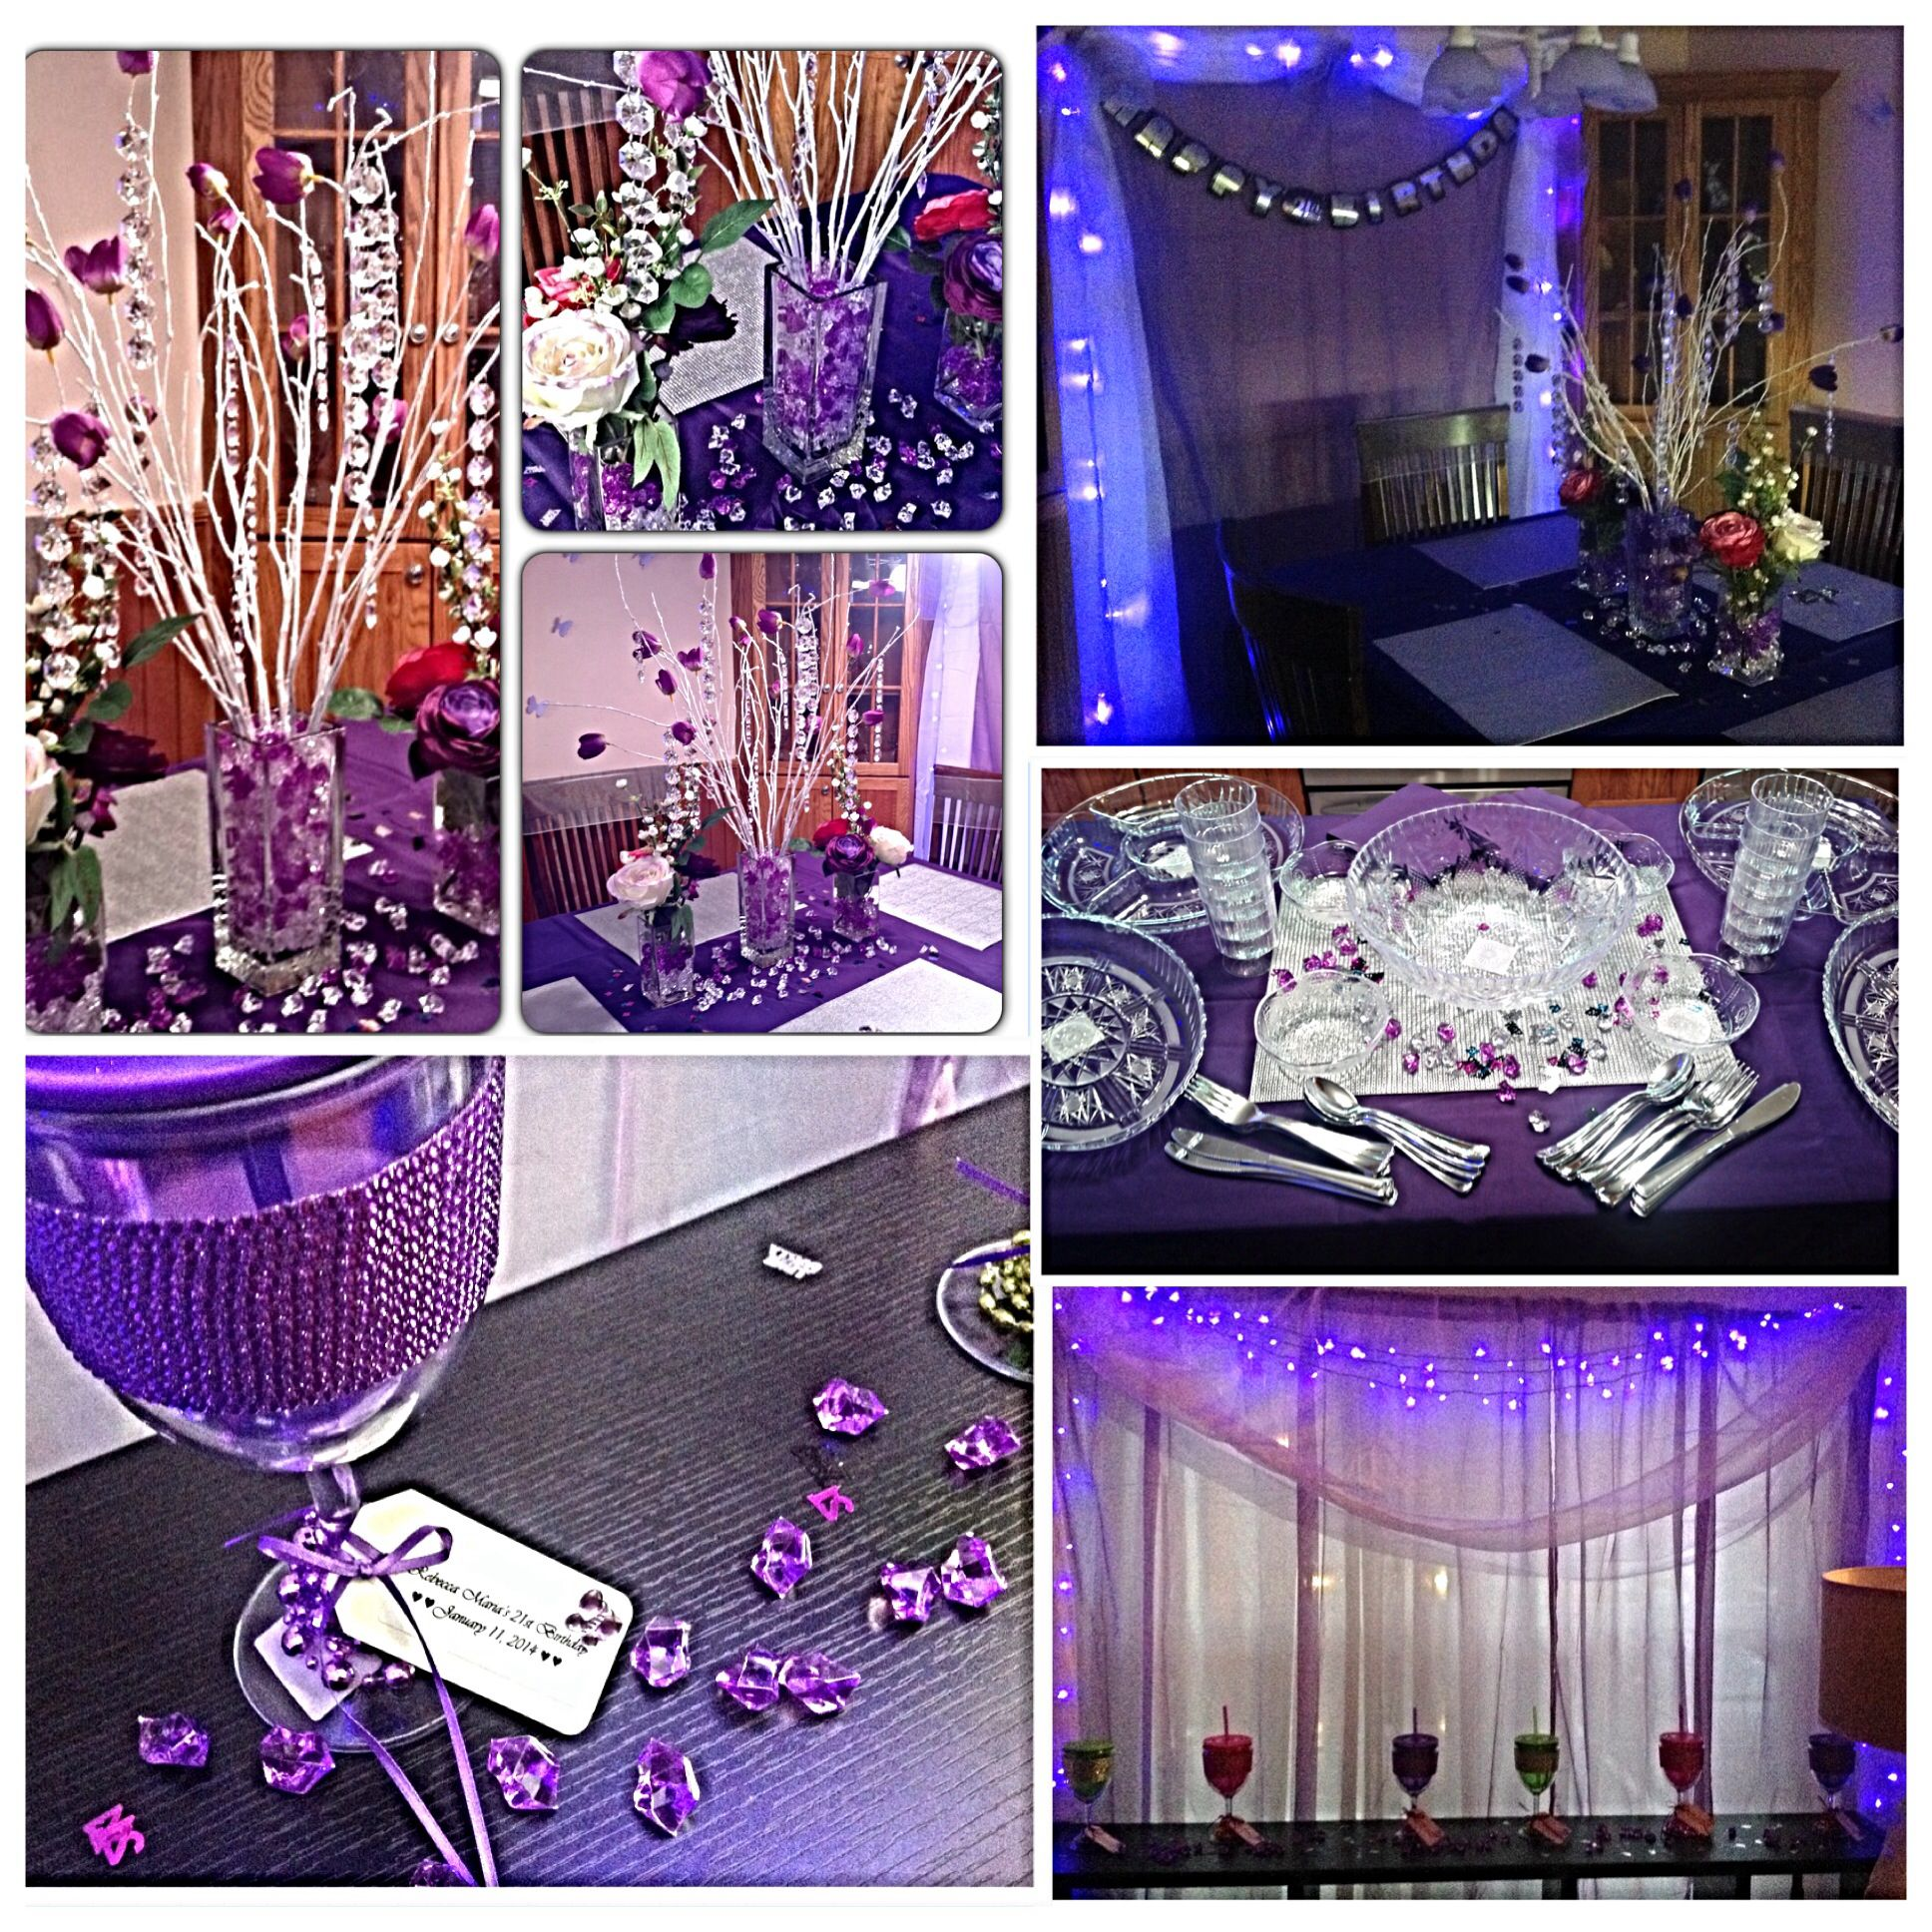 Purple Themed 21st Birthday Party Looked Like A Nightclub With The Lights Off And String On Windows Had Sheer Lavender Panels White